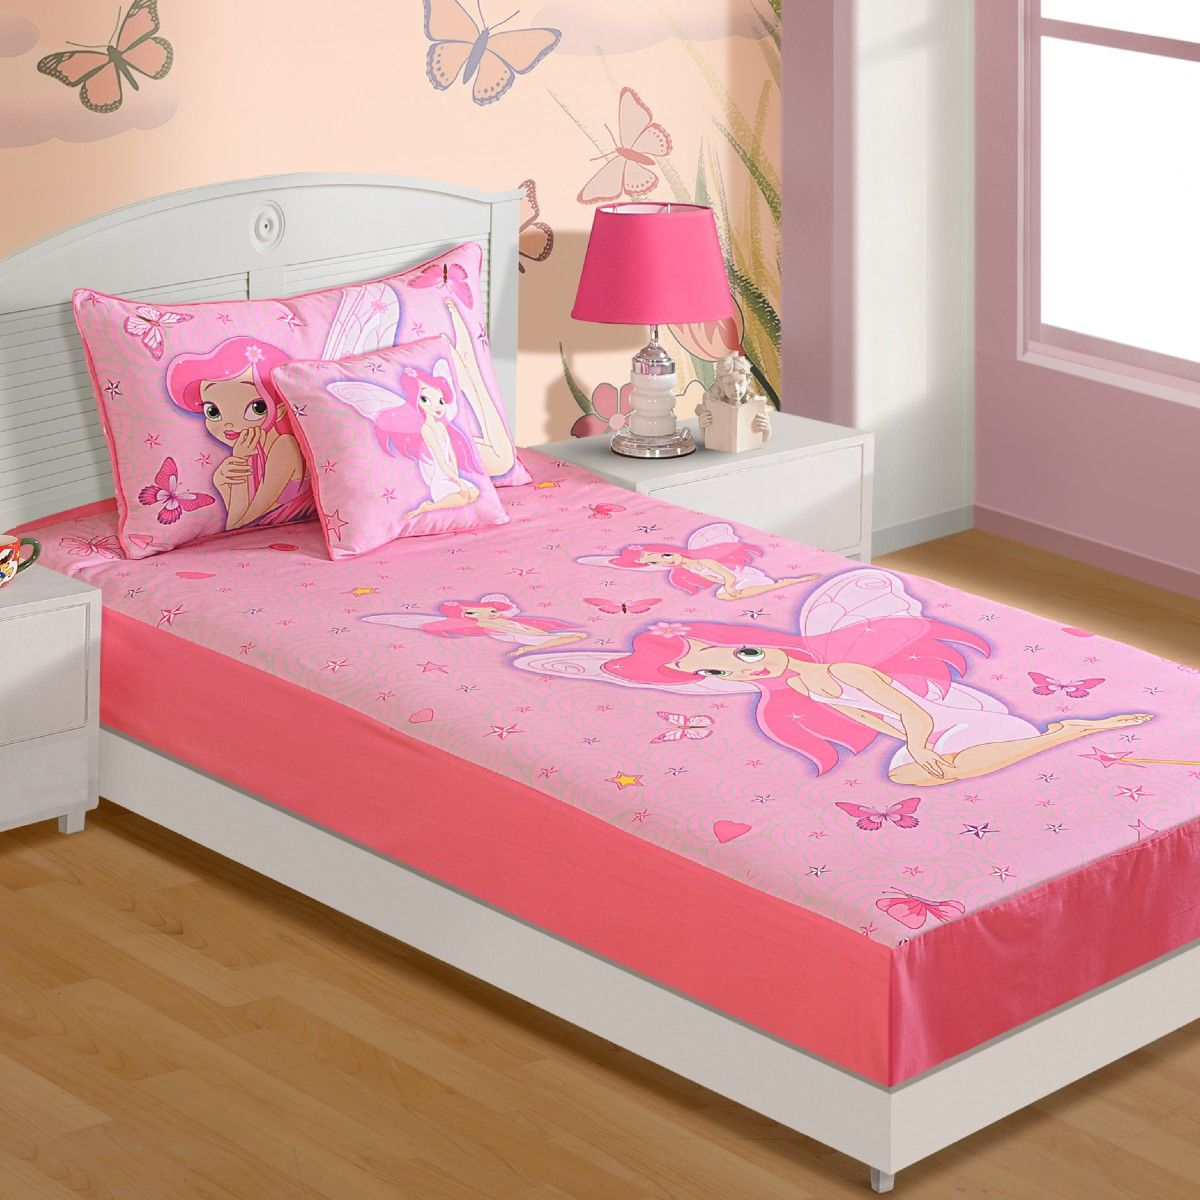 Bell tinker bed room photo exclusive photo